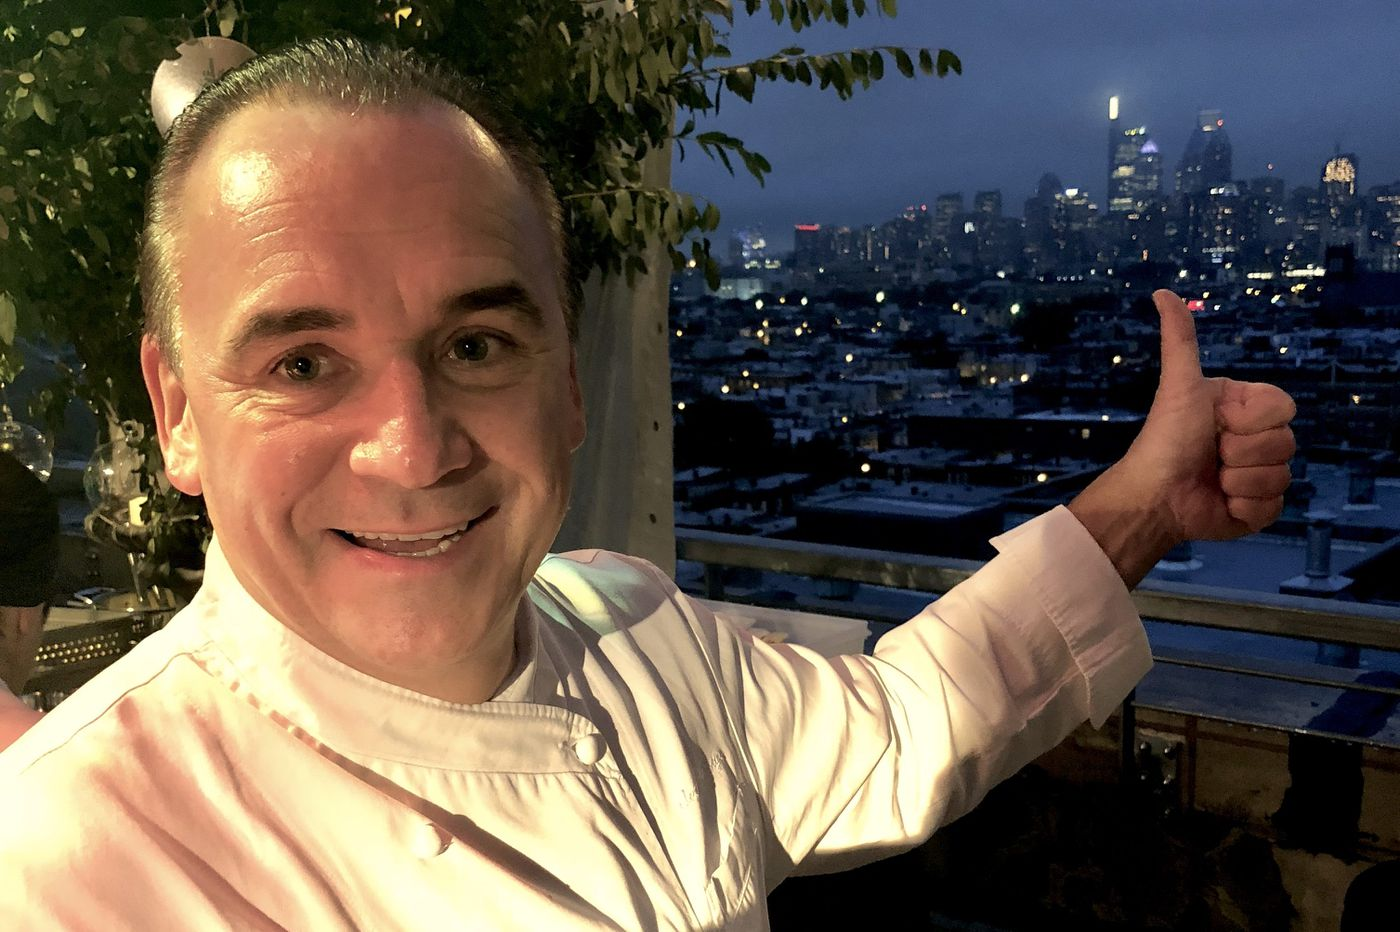 Jean-Georges' new restaurant at Four Seasons has a name